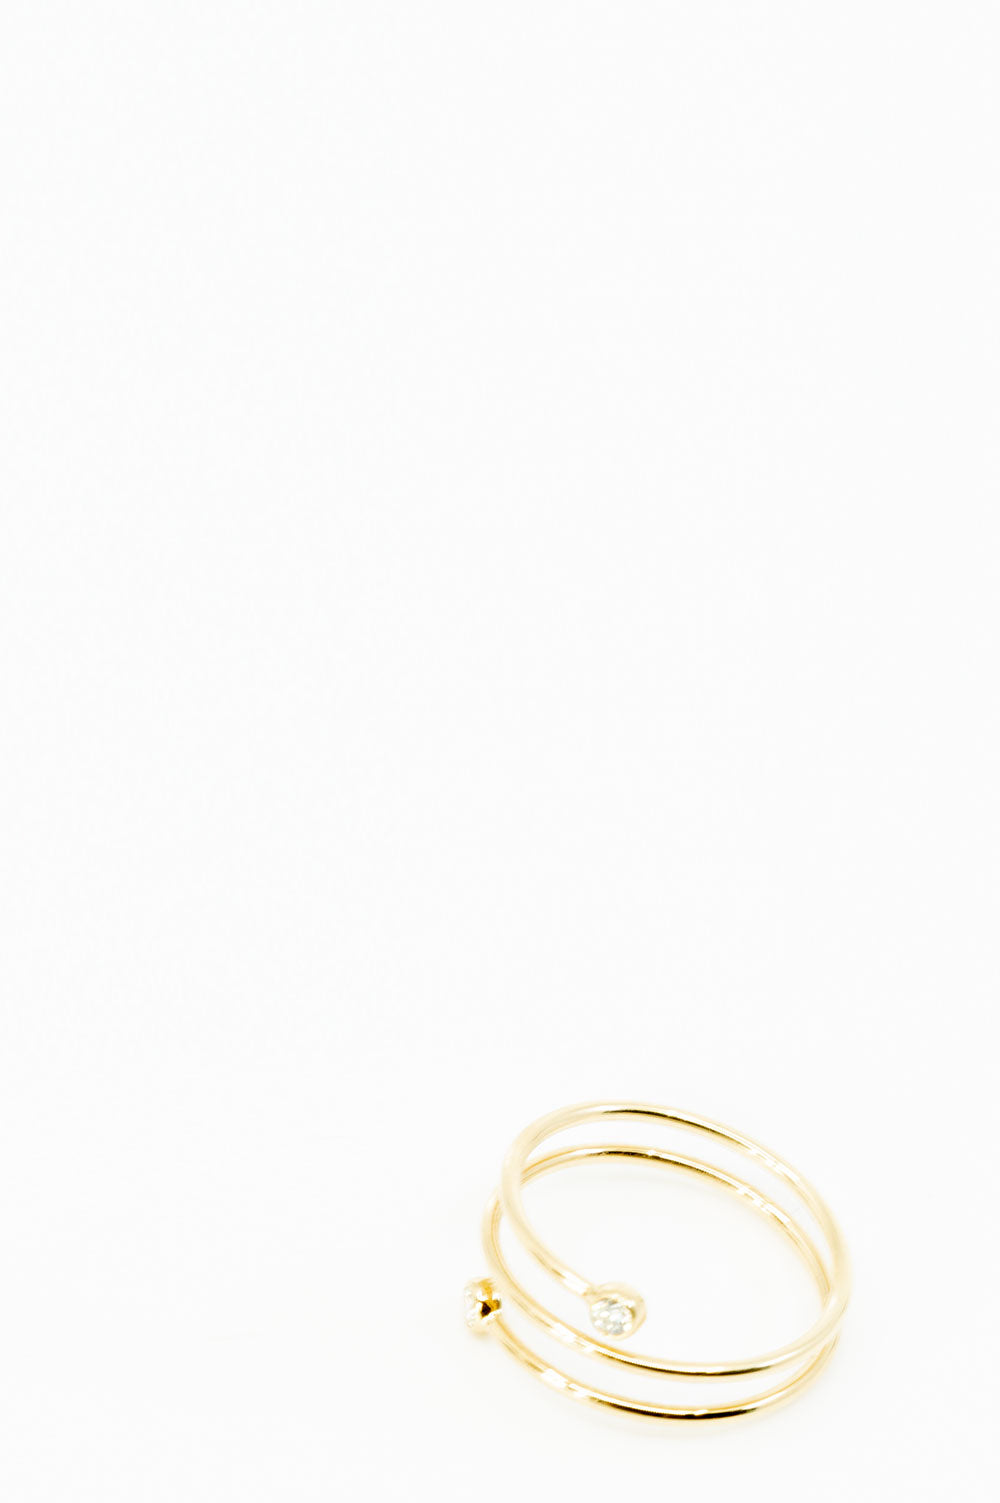 TIFFANY & Co. Hoop 3 Row Ring